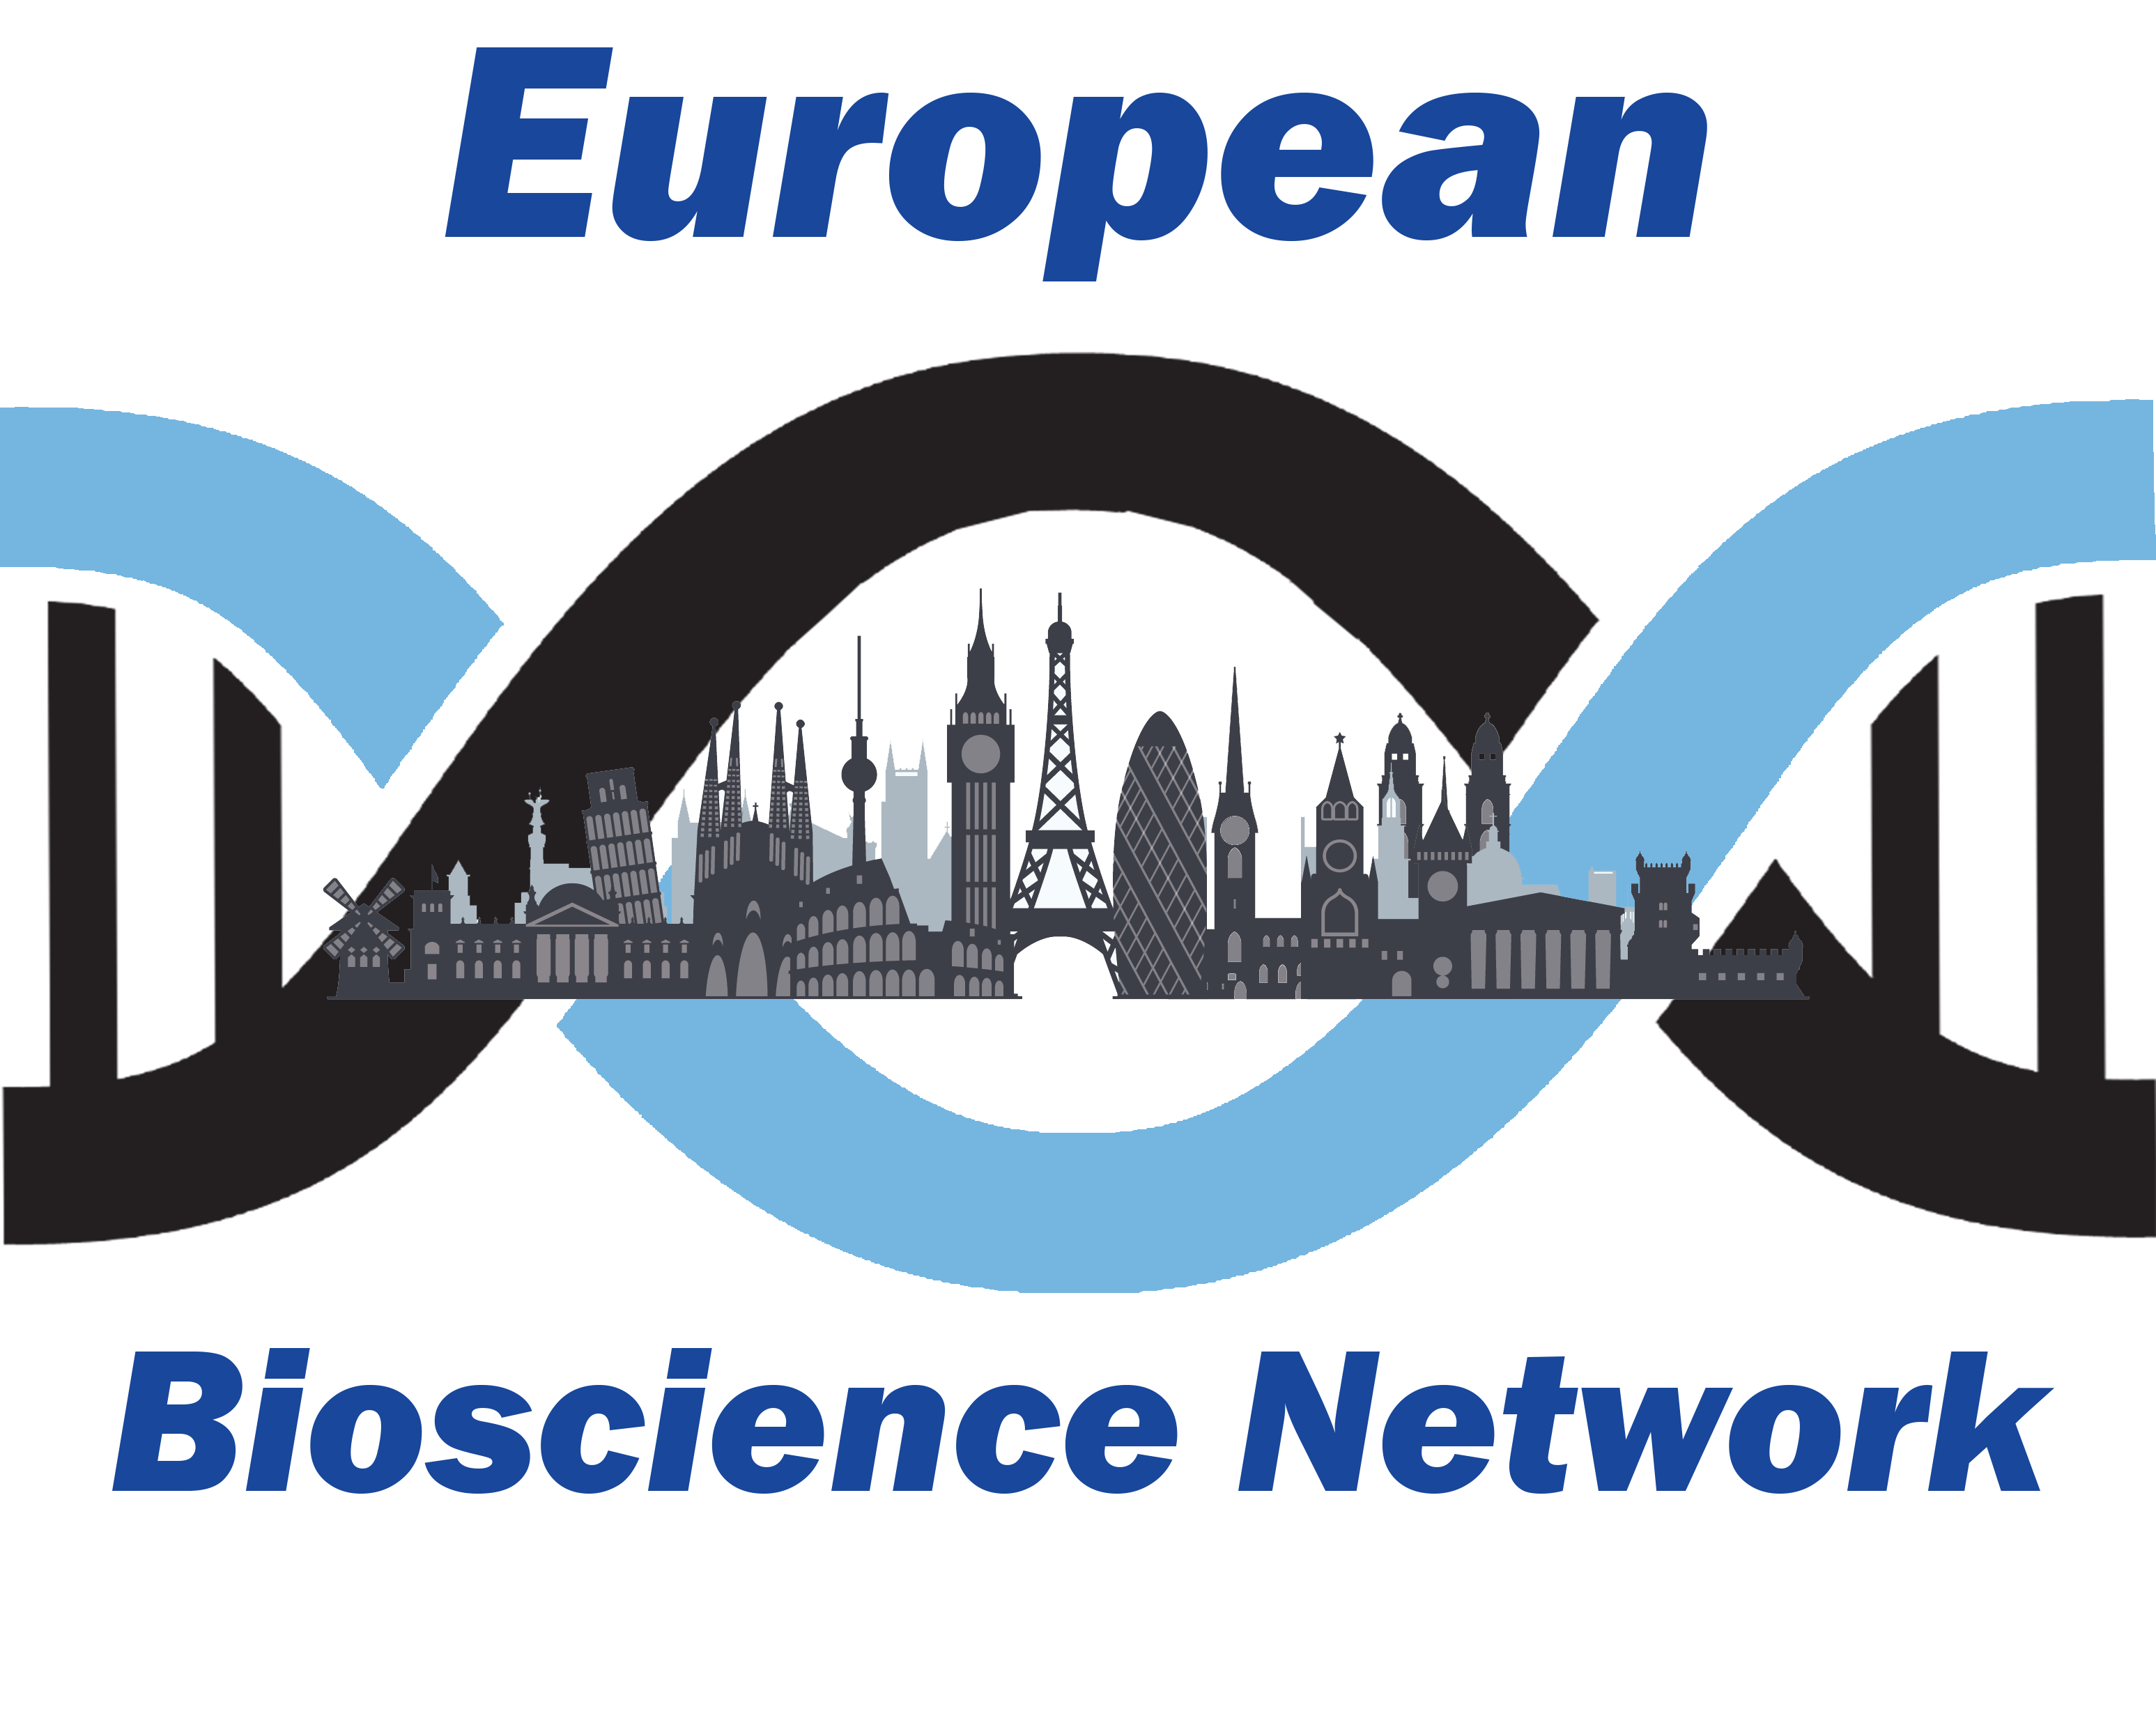 European Bioscience Network